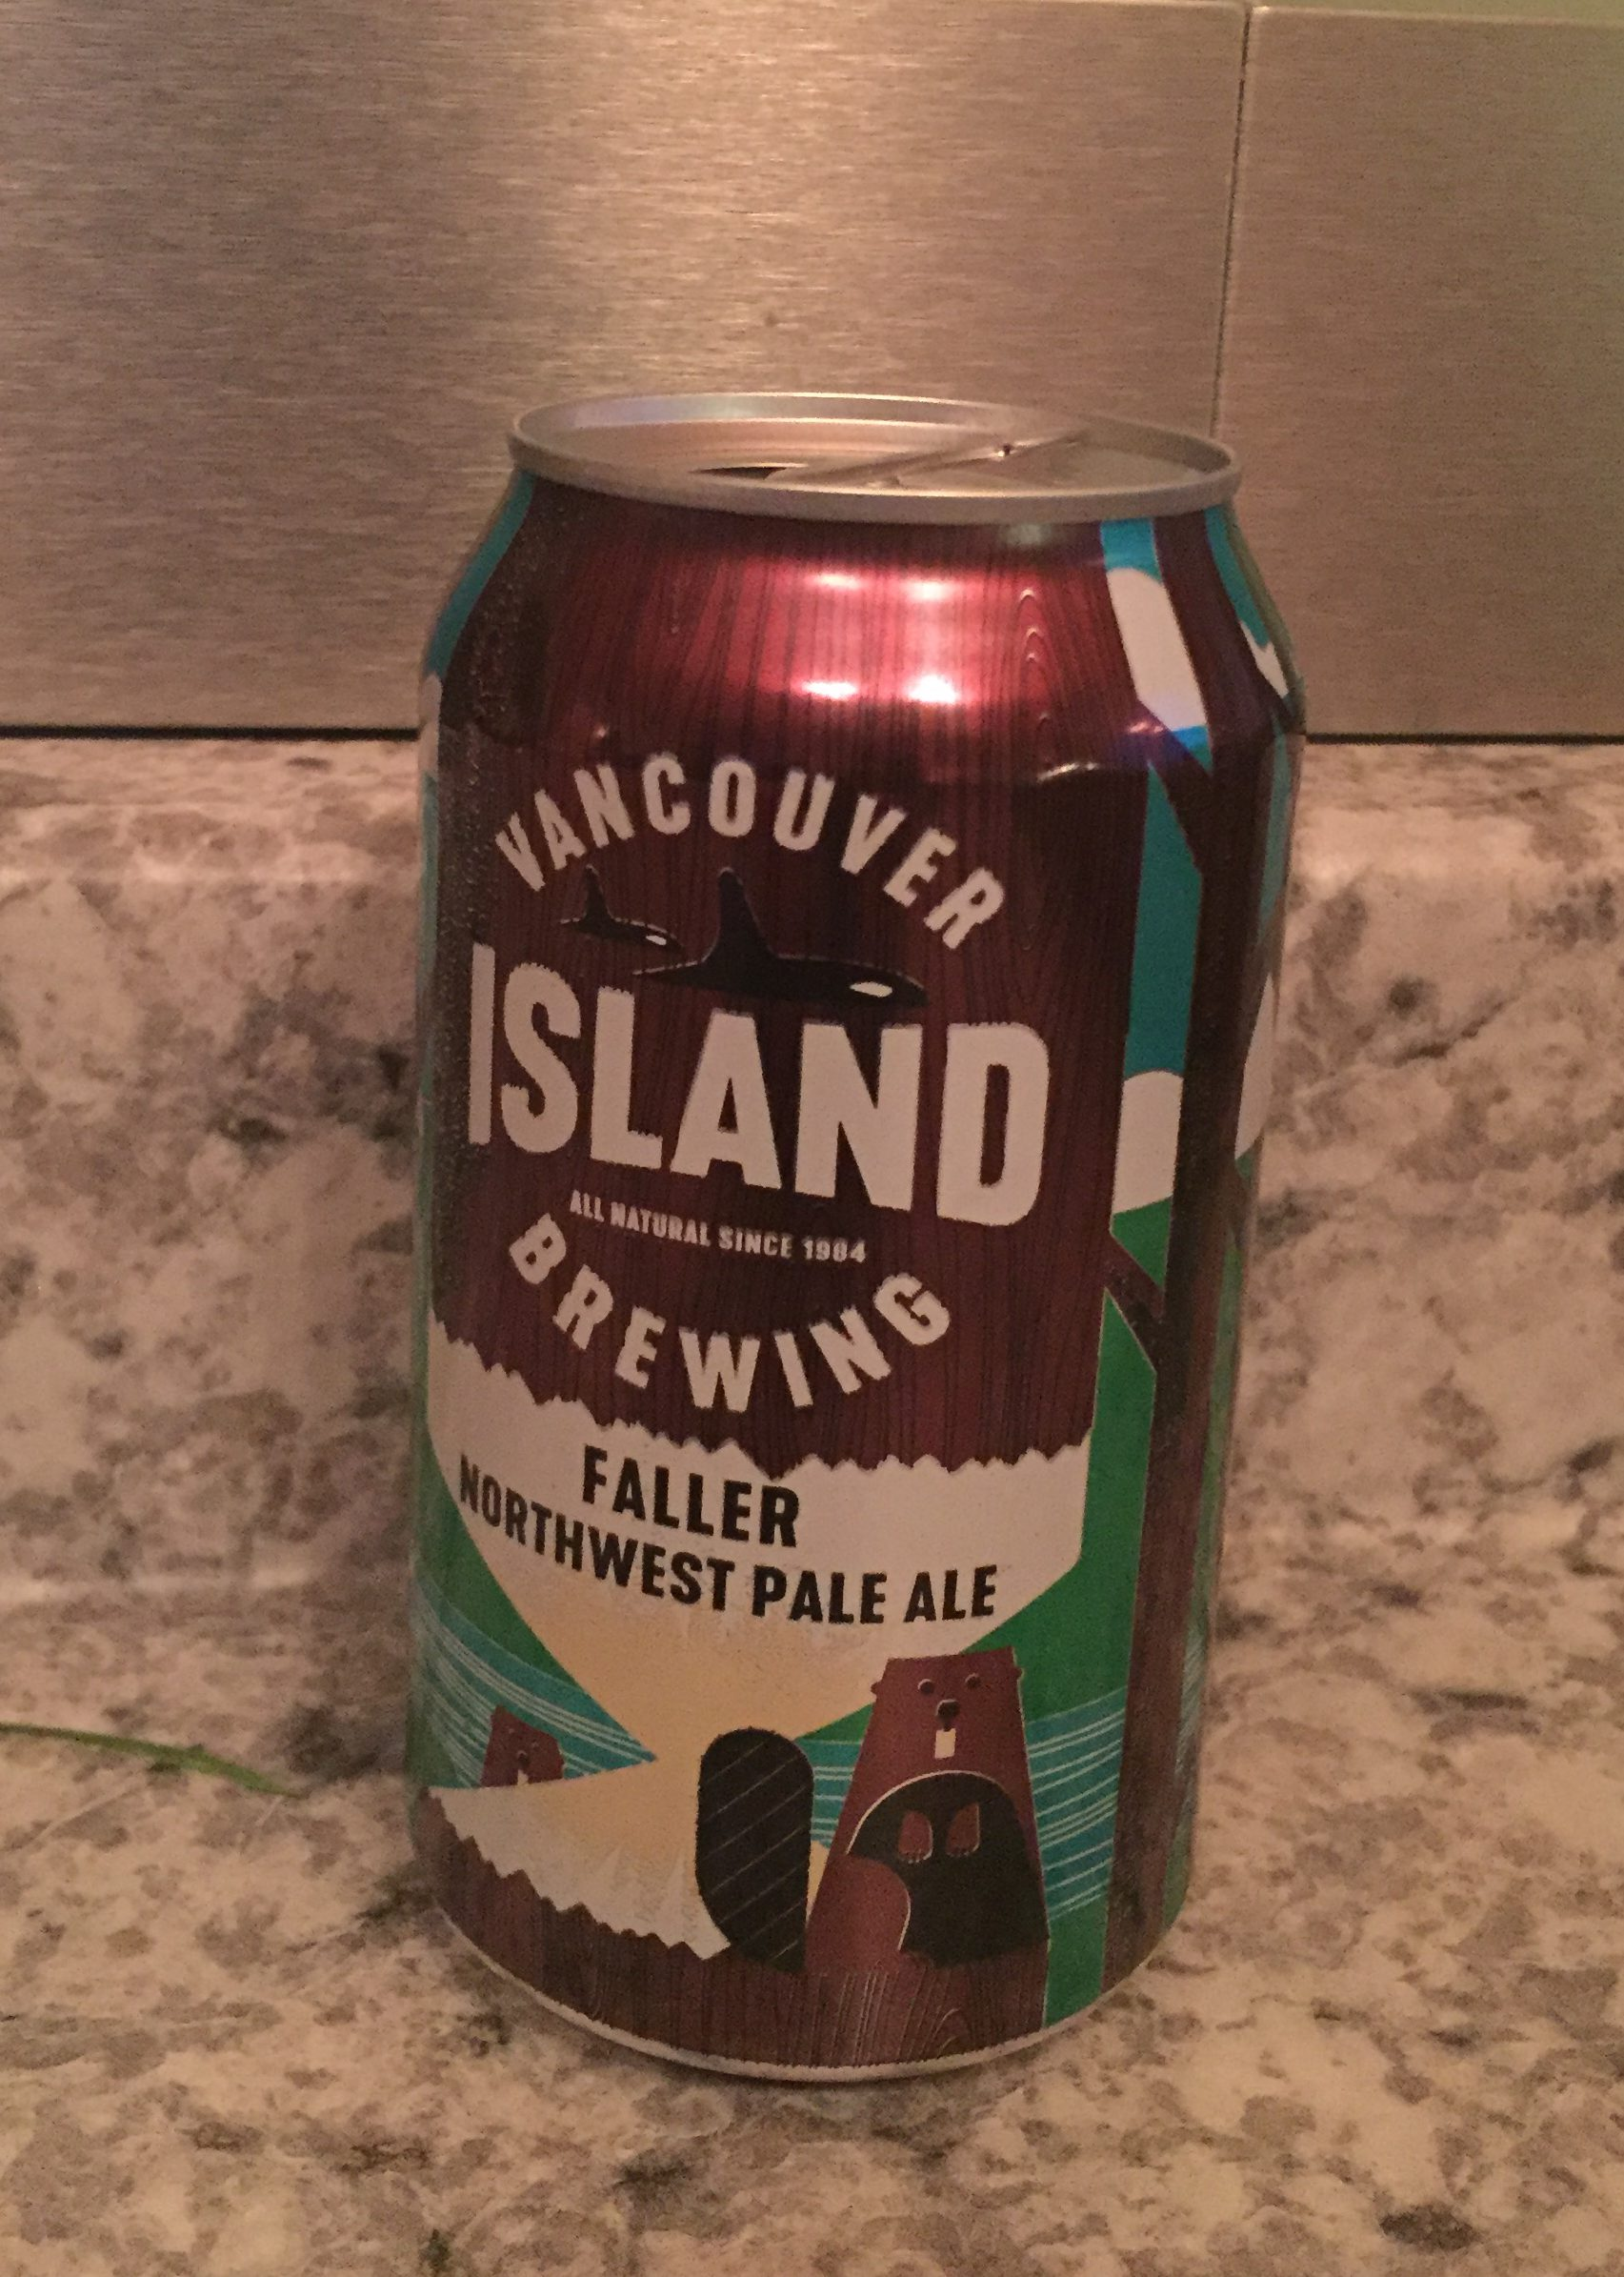 Vancouver Island Brewing, Faller Northwest Pale Ale